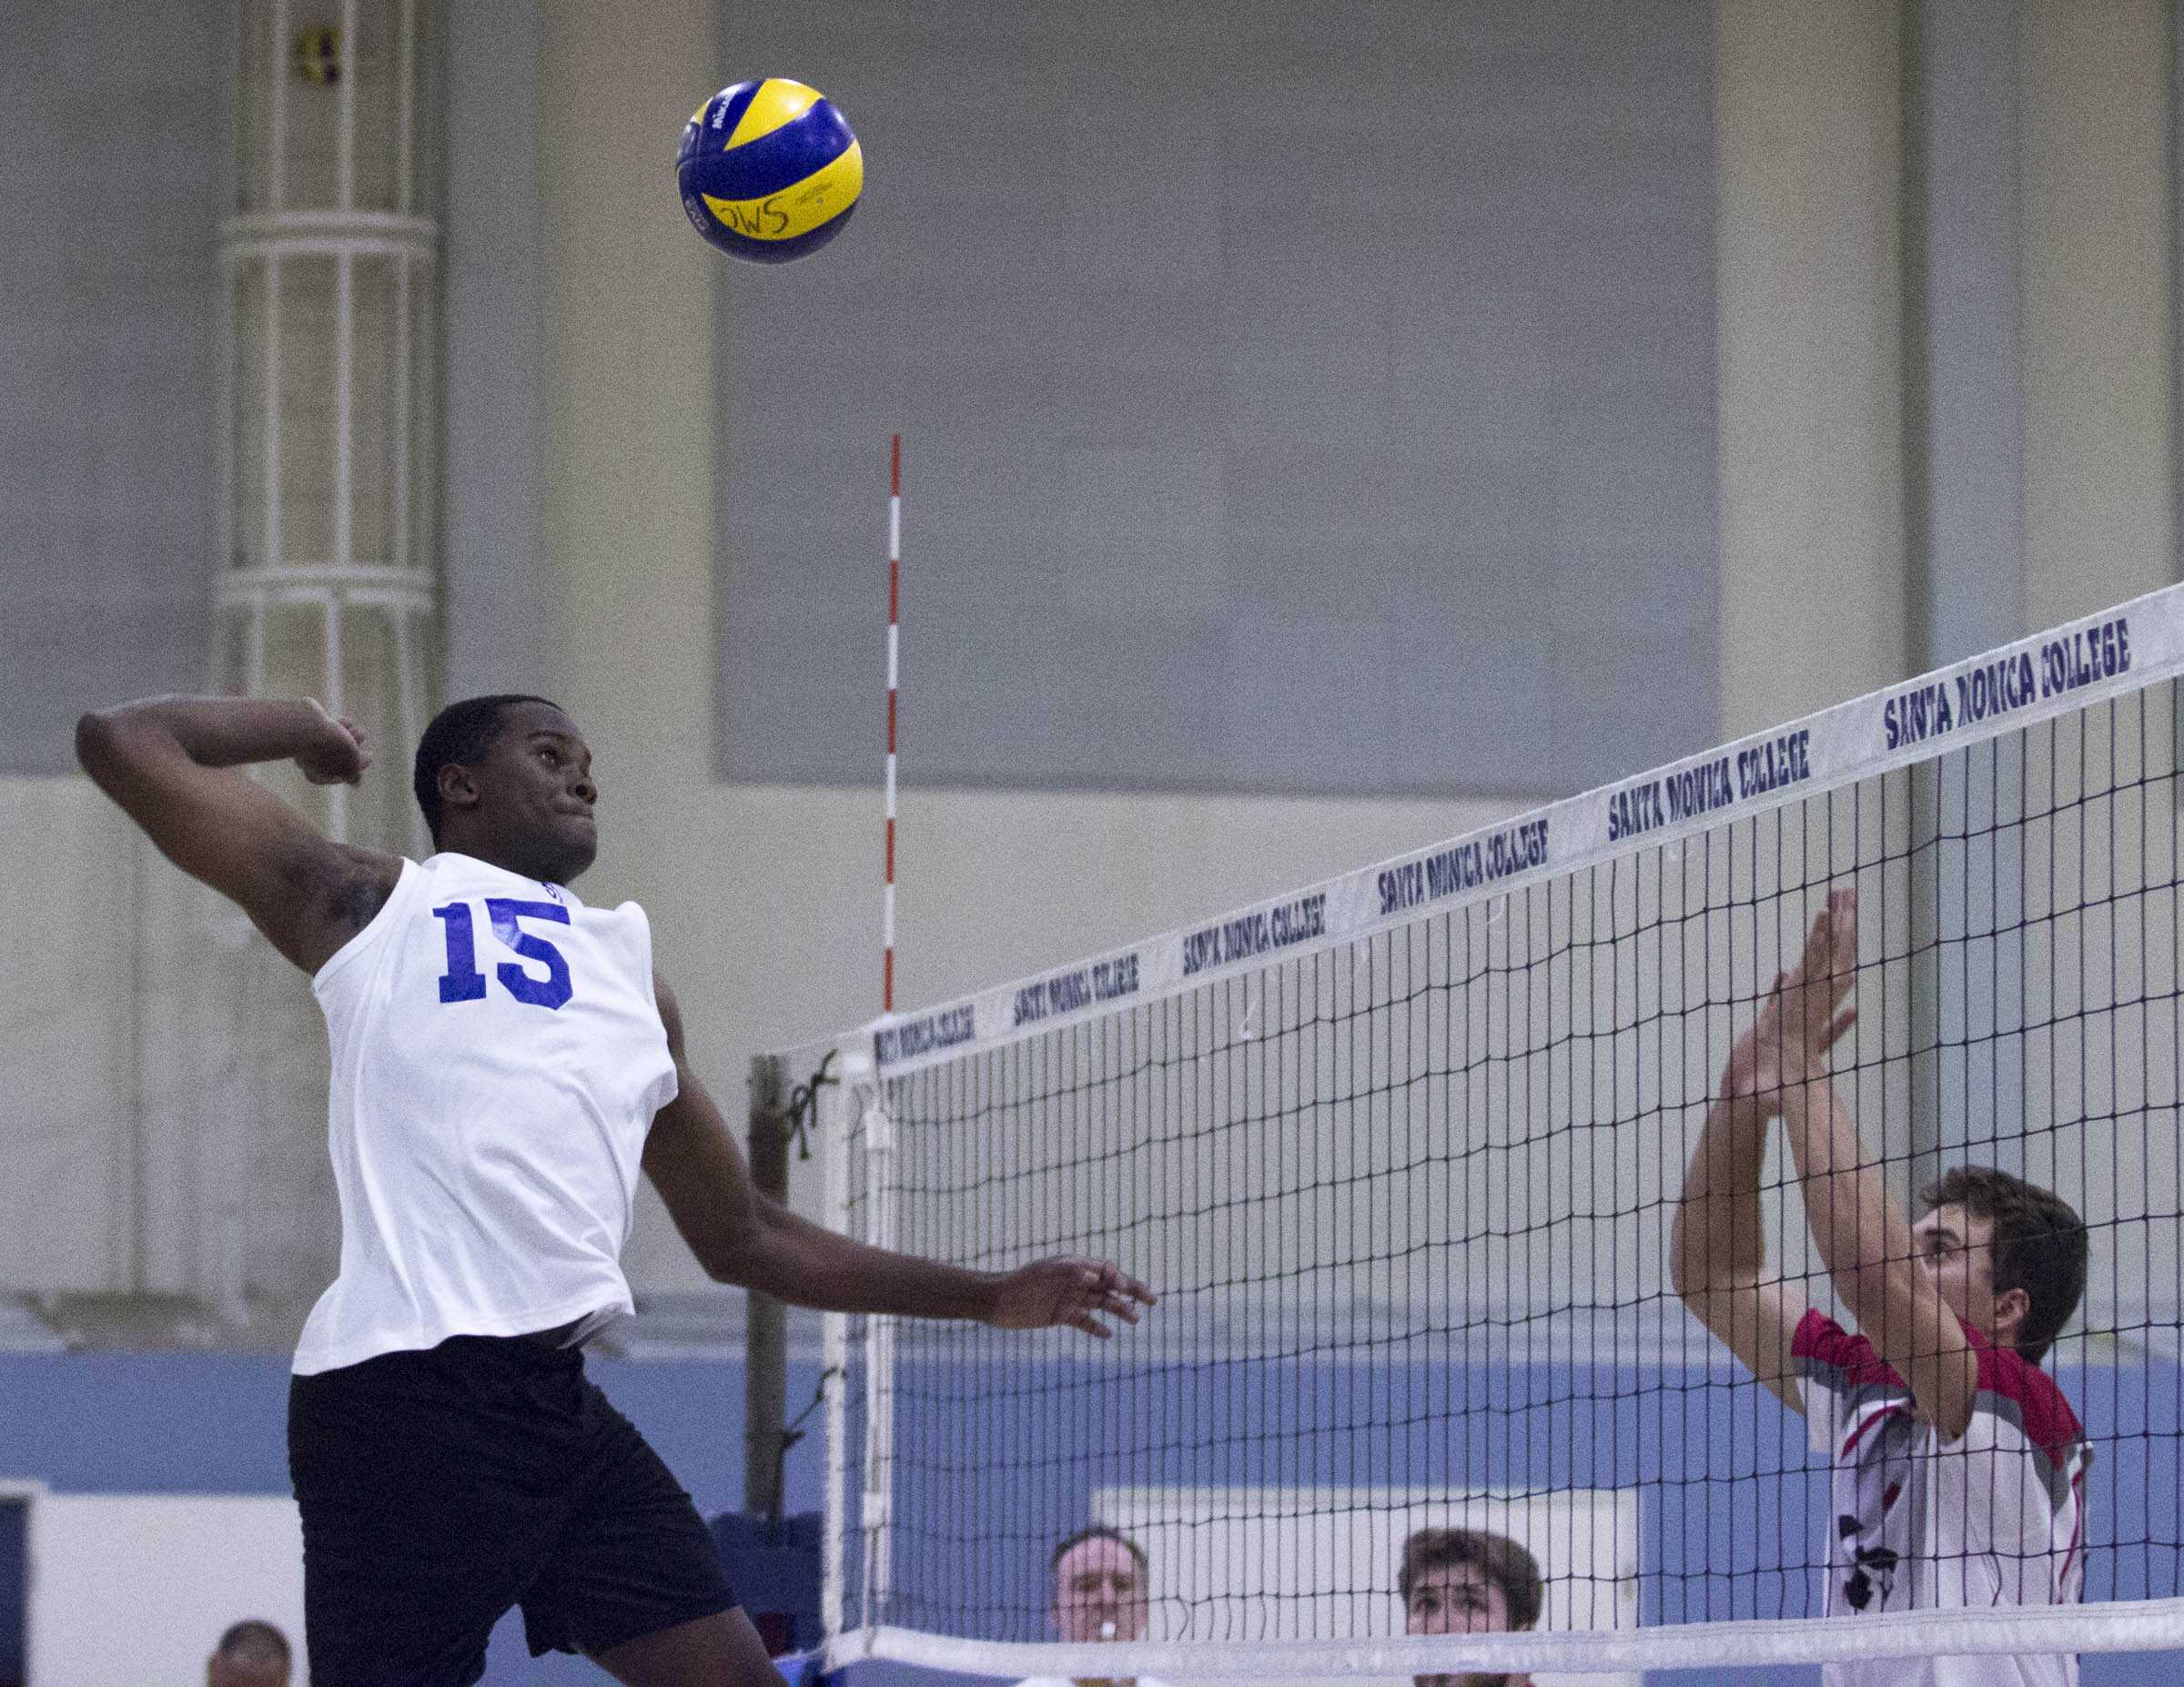 Santa Monica College Corsair freshman middle hitter Vecas Lewin (15, left) prepares for a spike as The Pierce College Brahmas outside blocker attempts to block the shot in the SMC Gymnasium at Santa Monica College in Santa Monica, CA. on wednesday, March 1, 2017. On the way to the Corsairs clean sweep of the Brahmas (3-0). (Corsair Photo: Zane Meyer-Thornton)